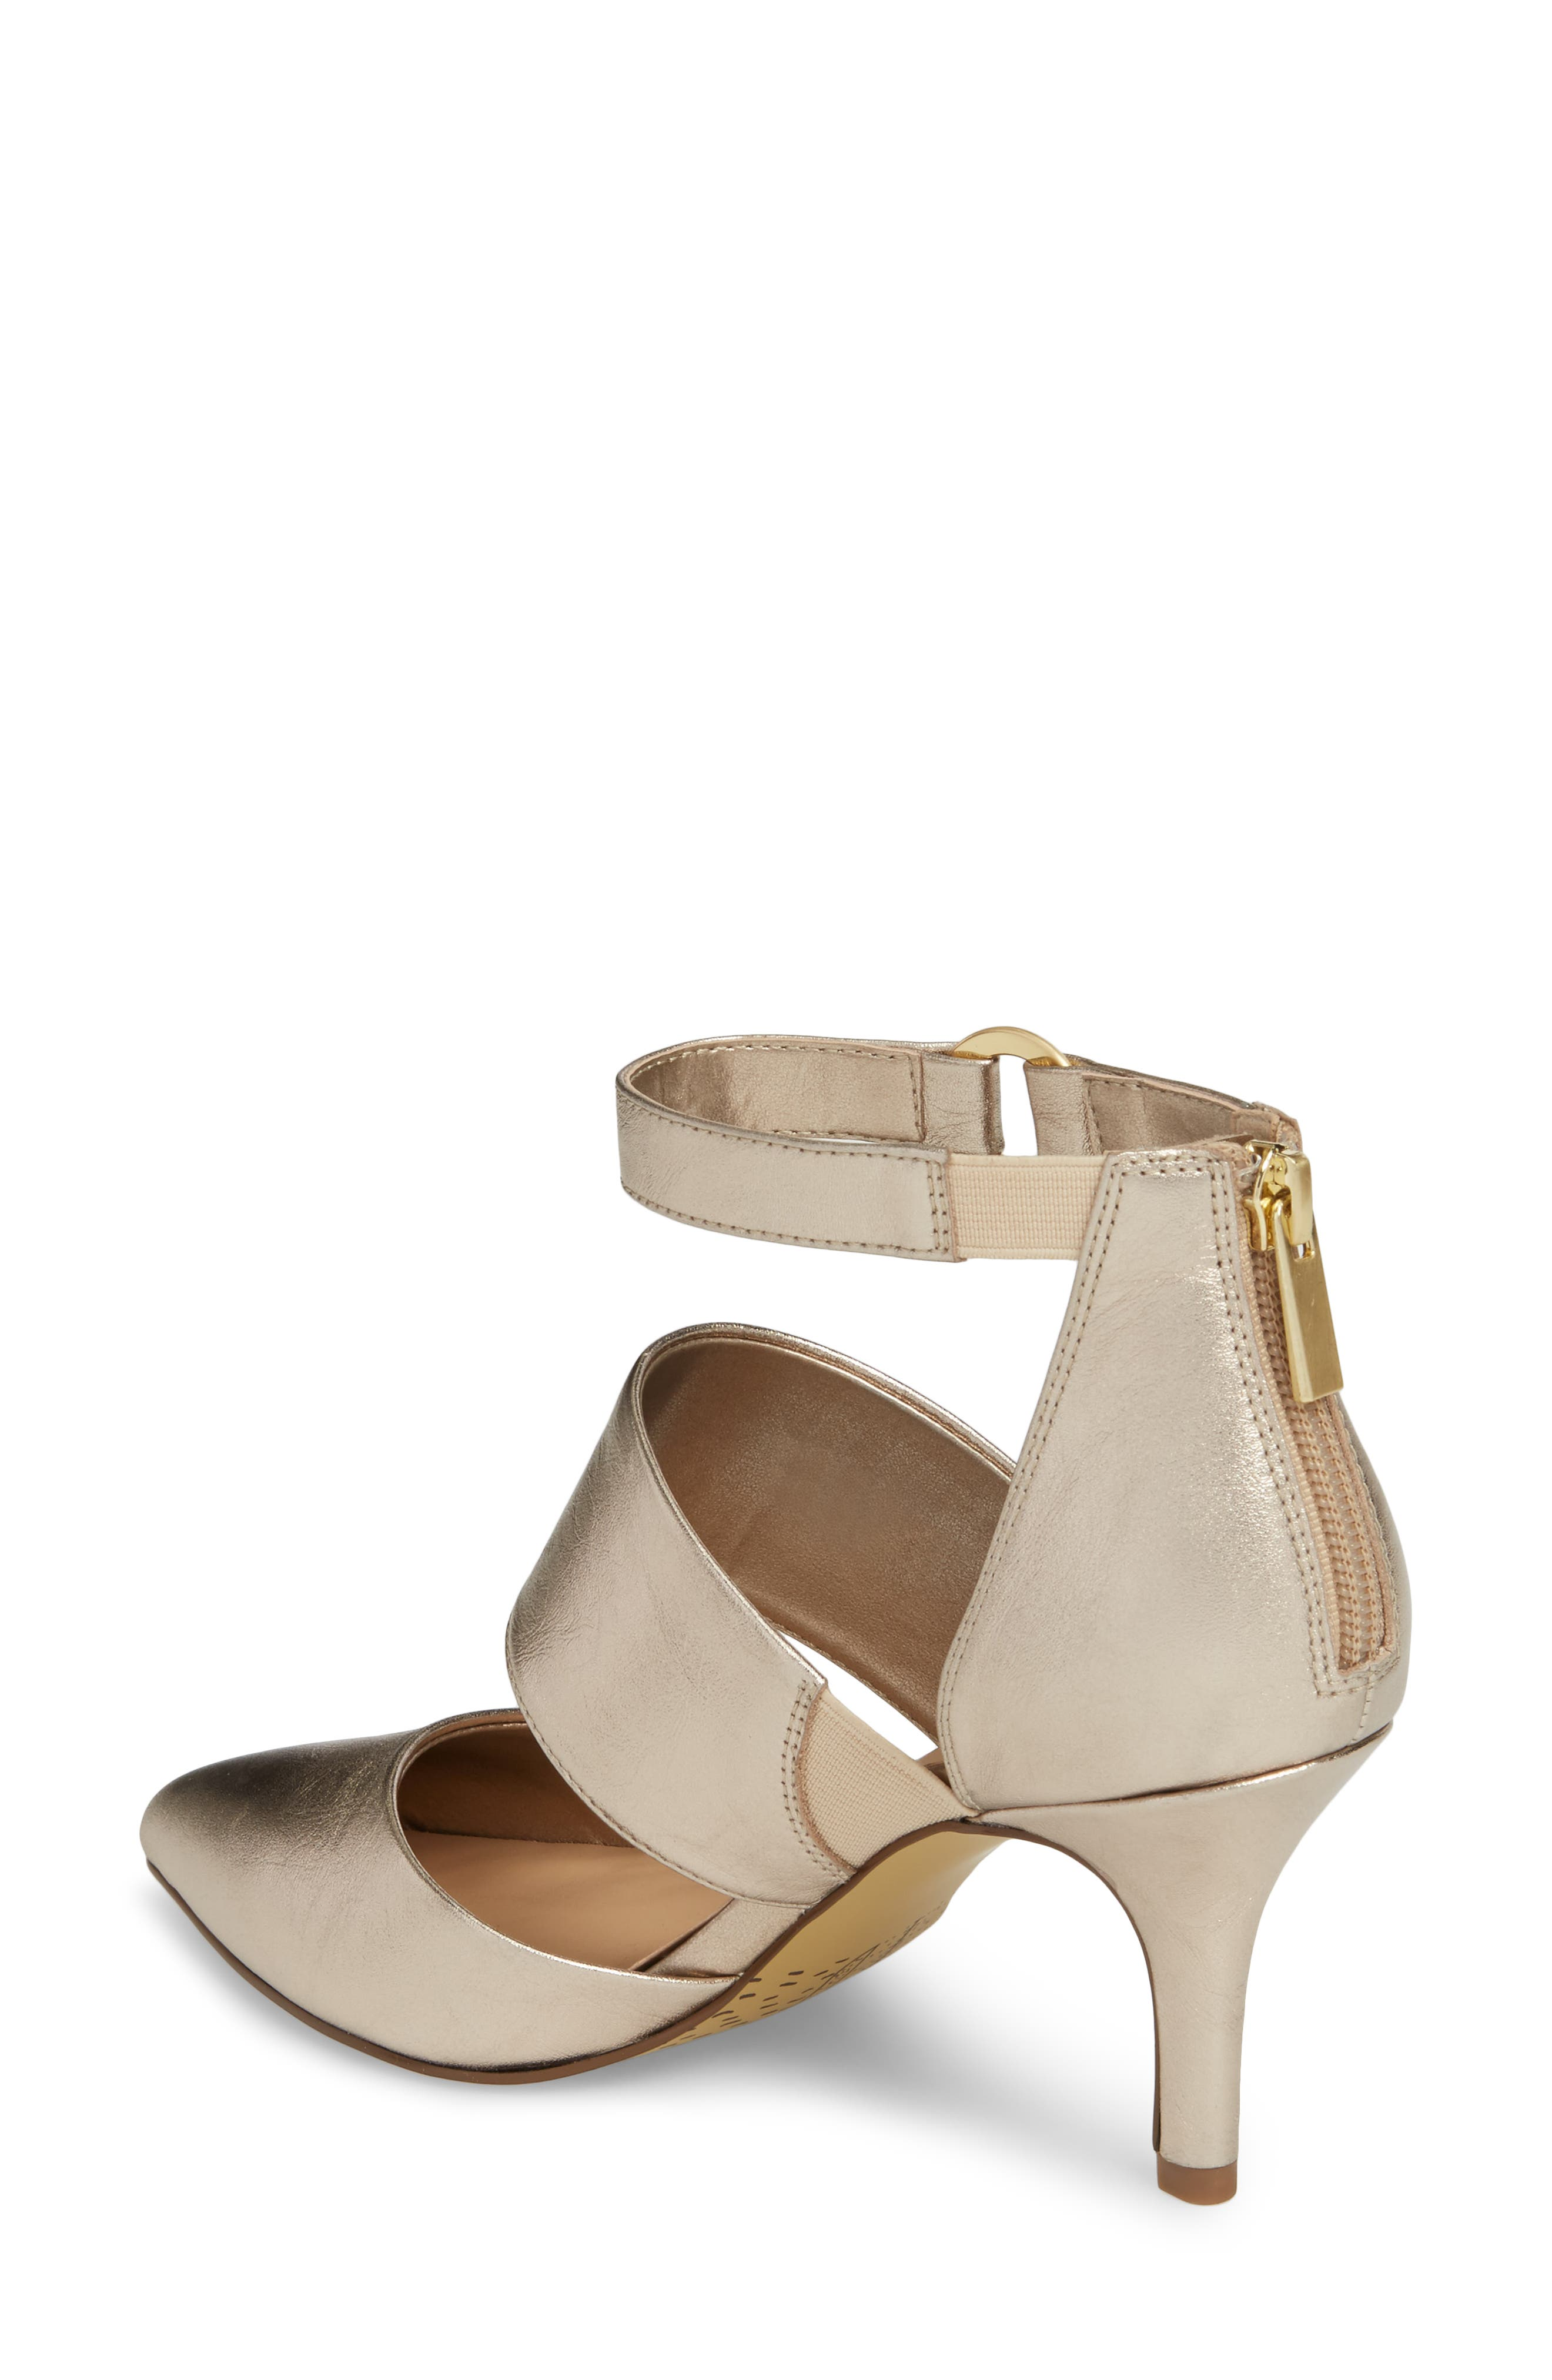 Diana Pump,                             Alternate thumbnail 2, color,                             Champagne Leather